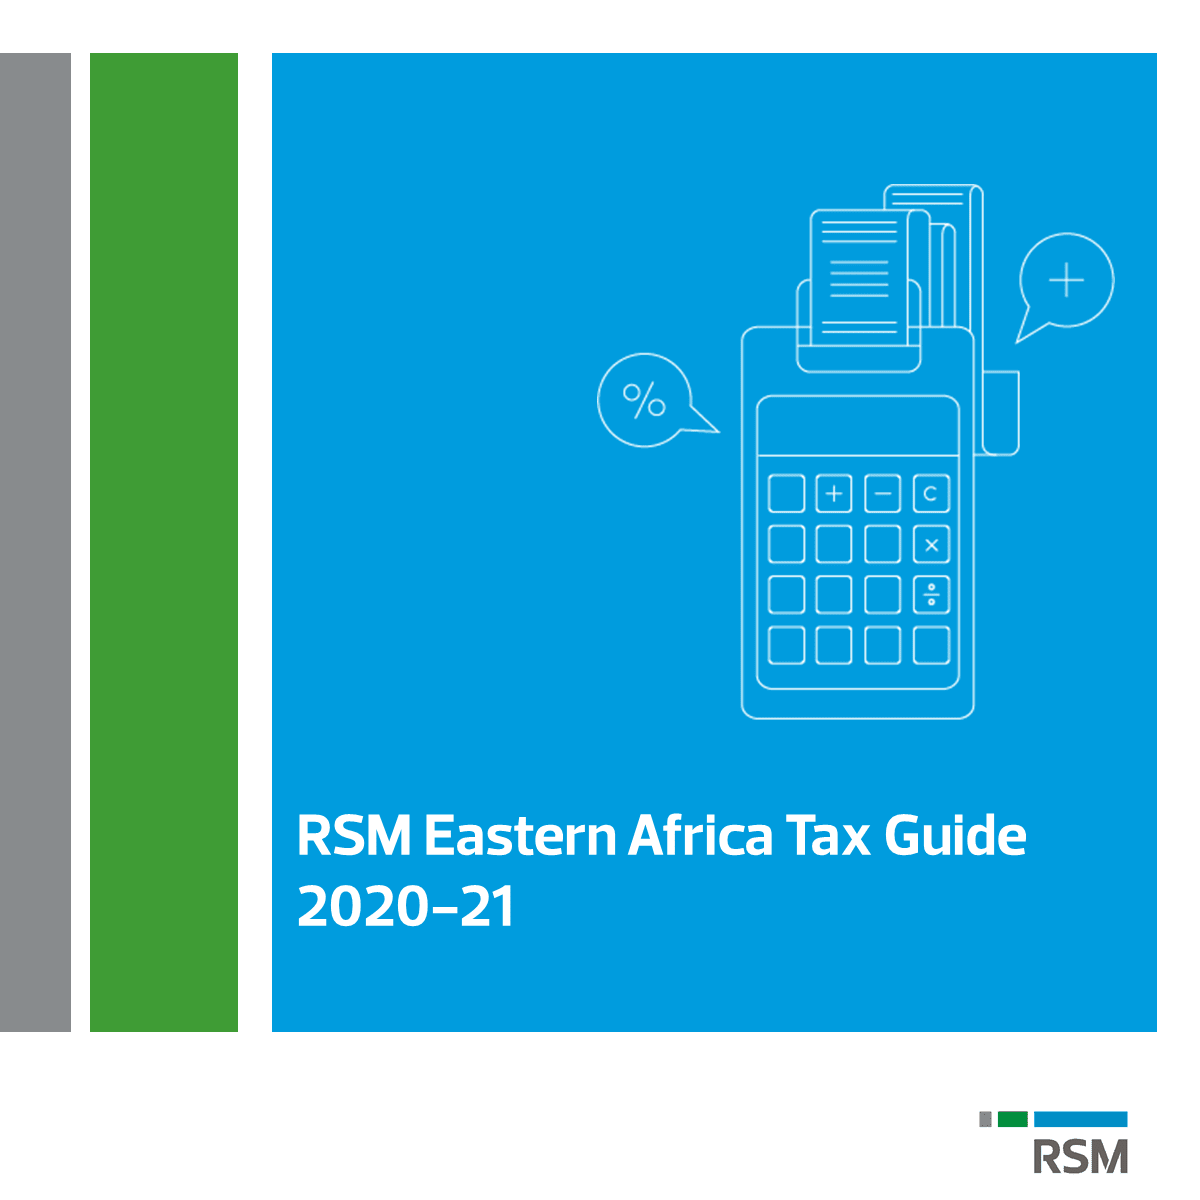 public://media/rsm_eastern_africa_tax_guide_2020-21.png